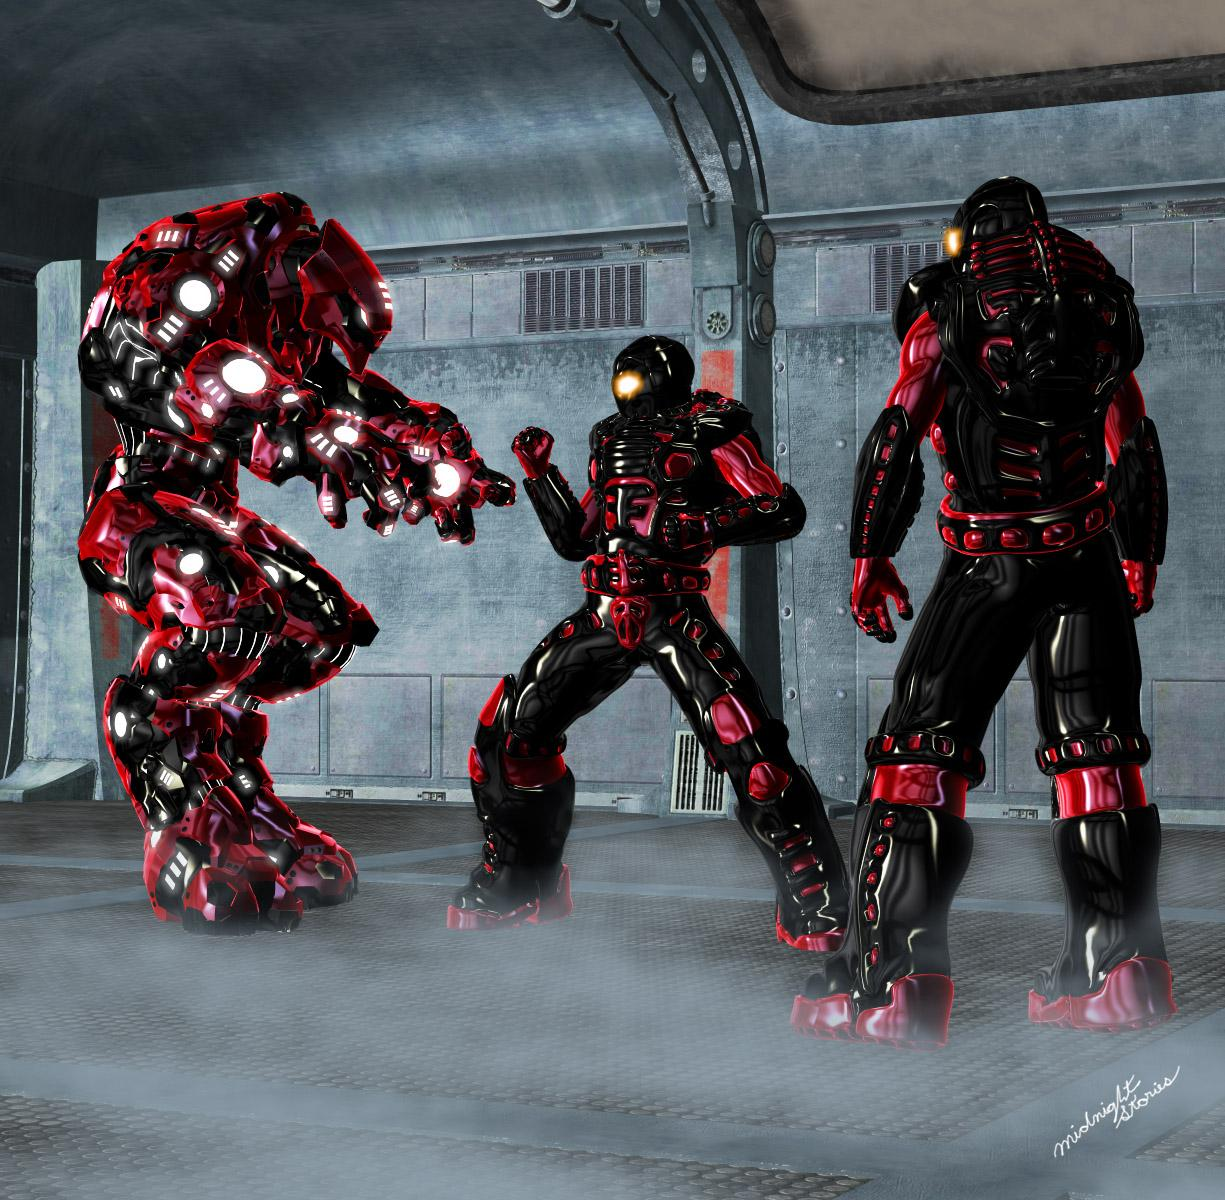 M4-Mech-Marines by midnight_stories